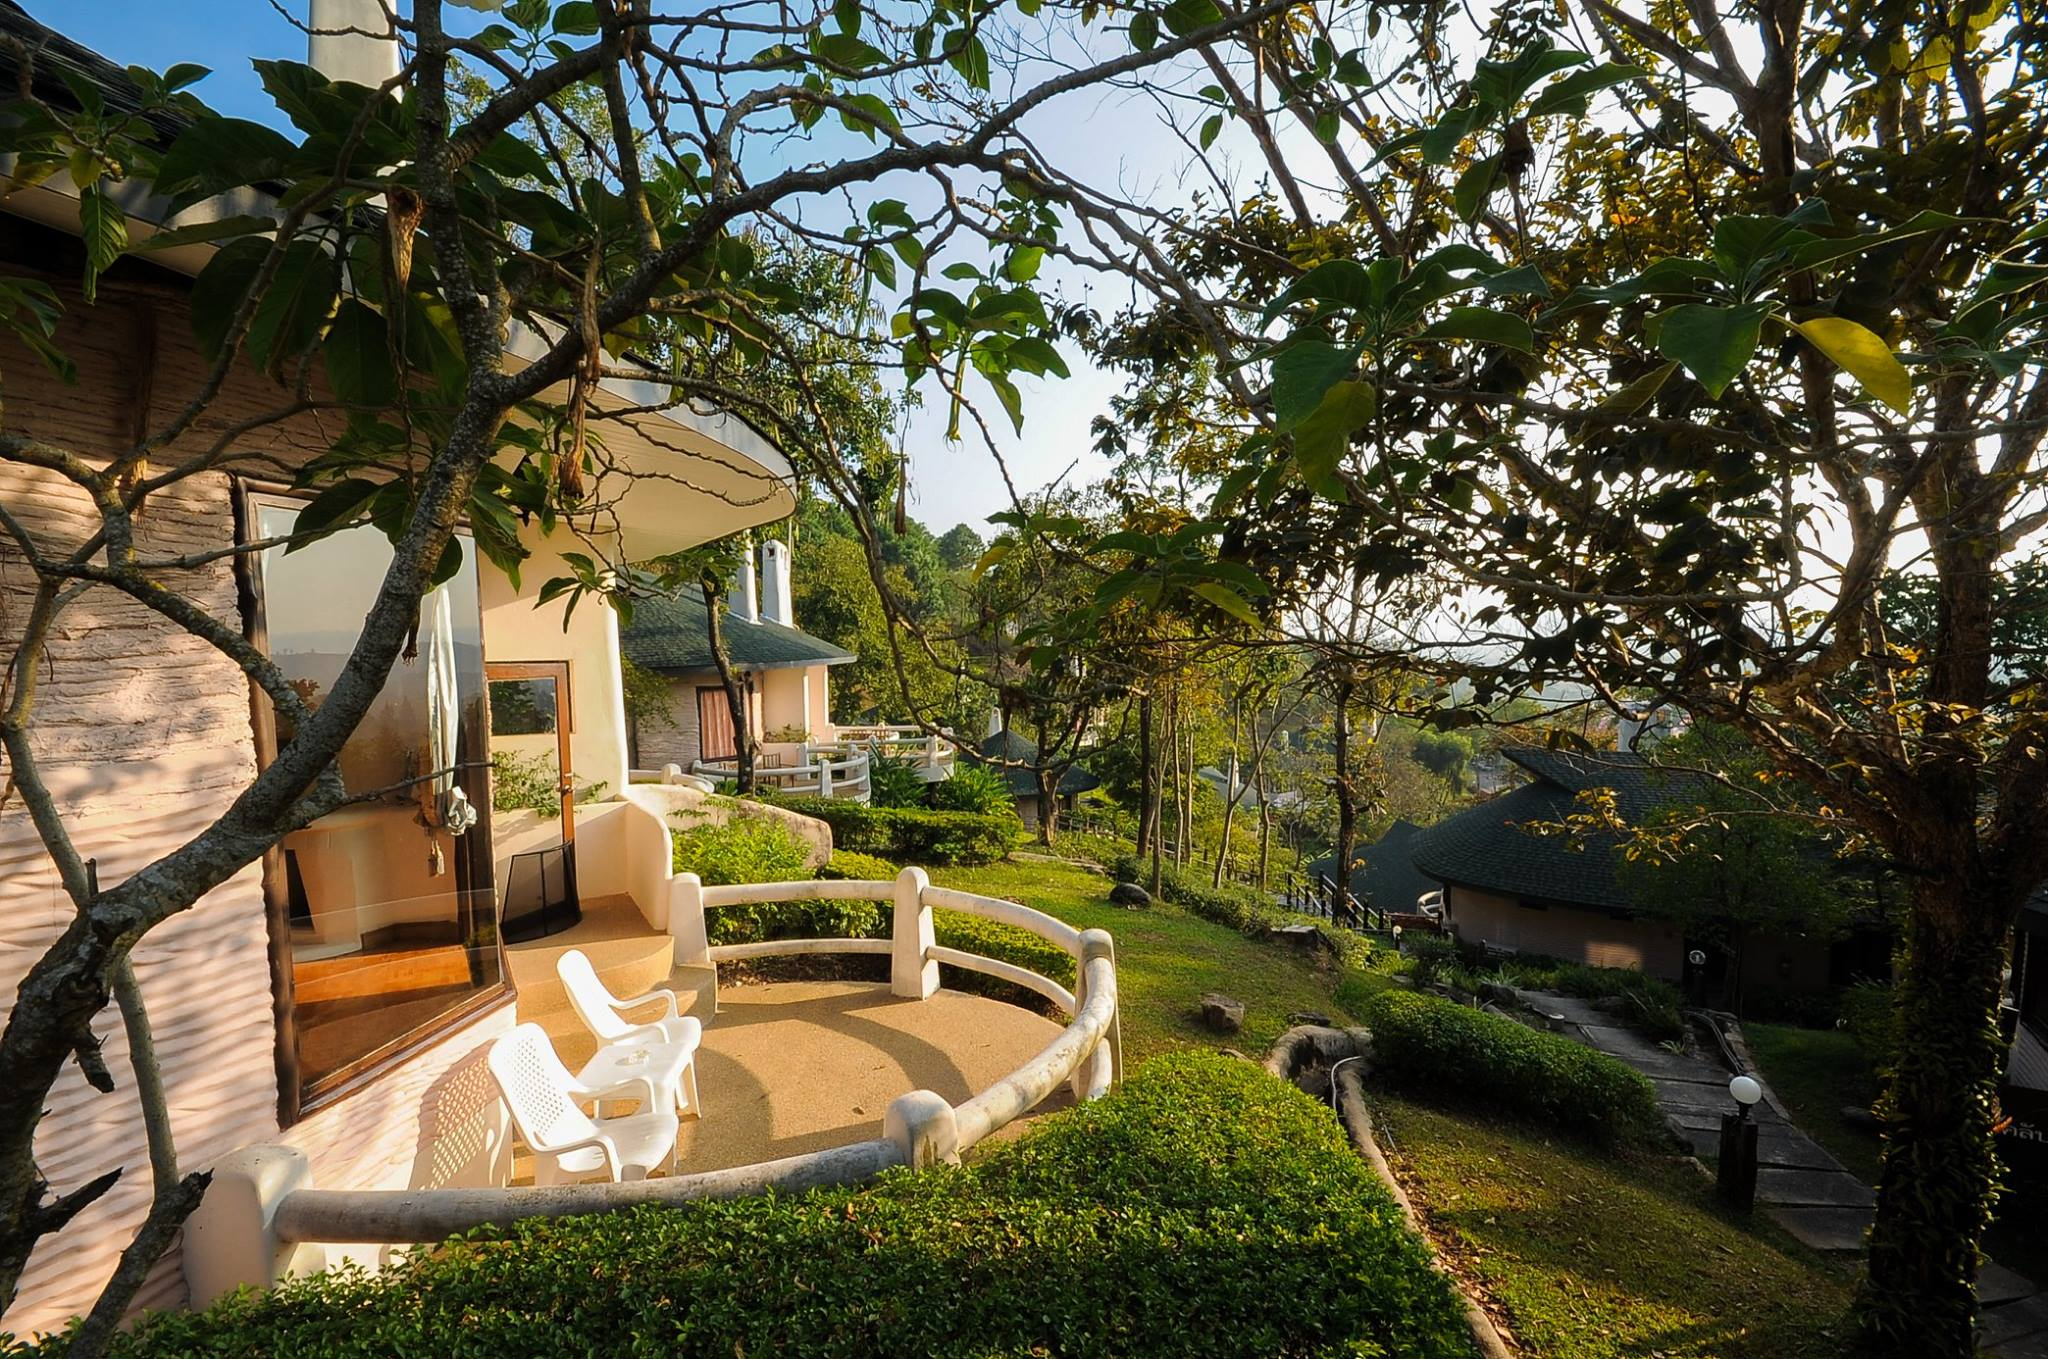 Image from Imperial Phukaew Hill Resort